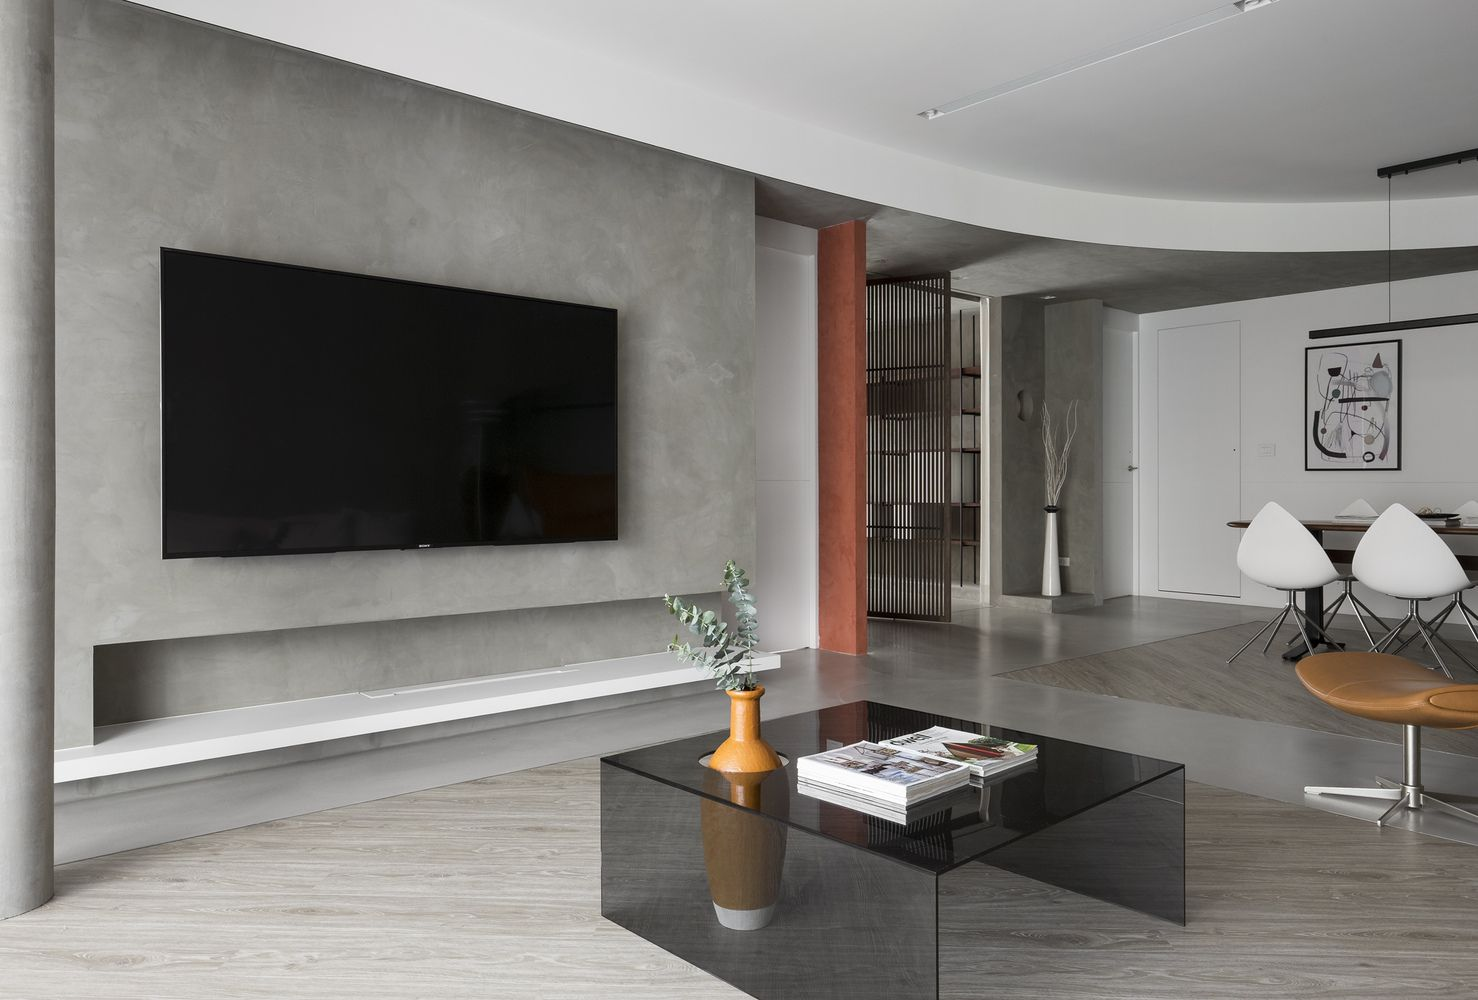 Gallery Of House Of Future Contemporary Studio In2 11 Contemporary Interior Design Interior Design Contemporary Interior